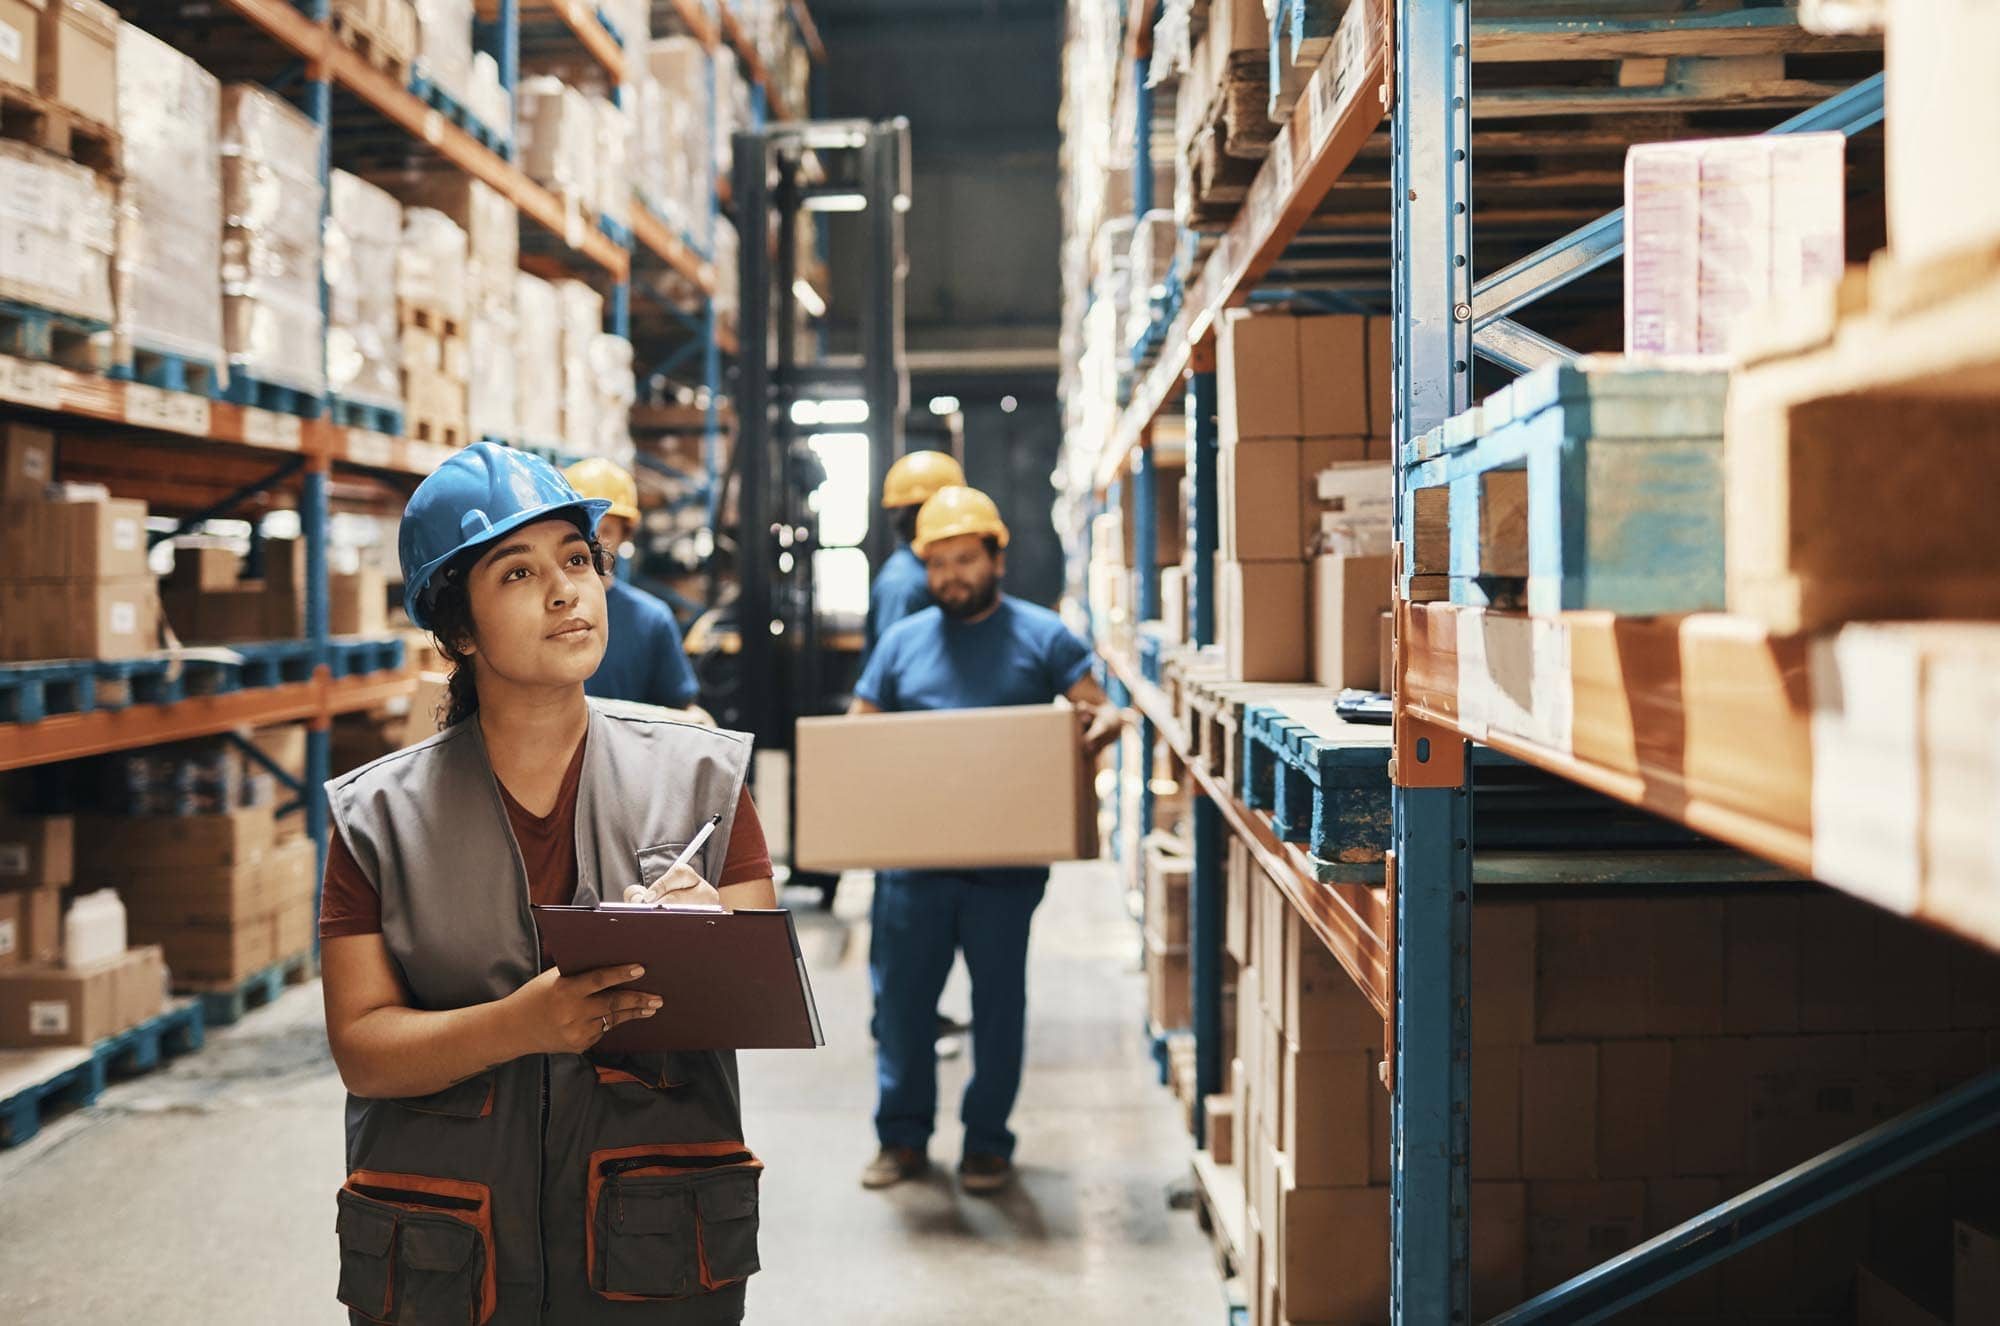 Working wearing hard hat in commercial warehouse